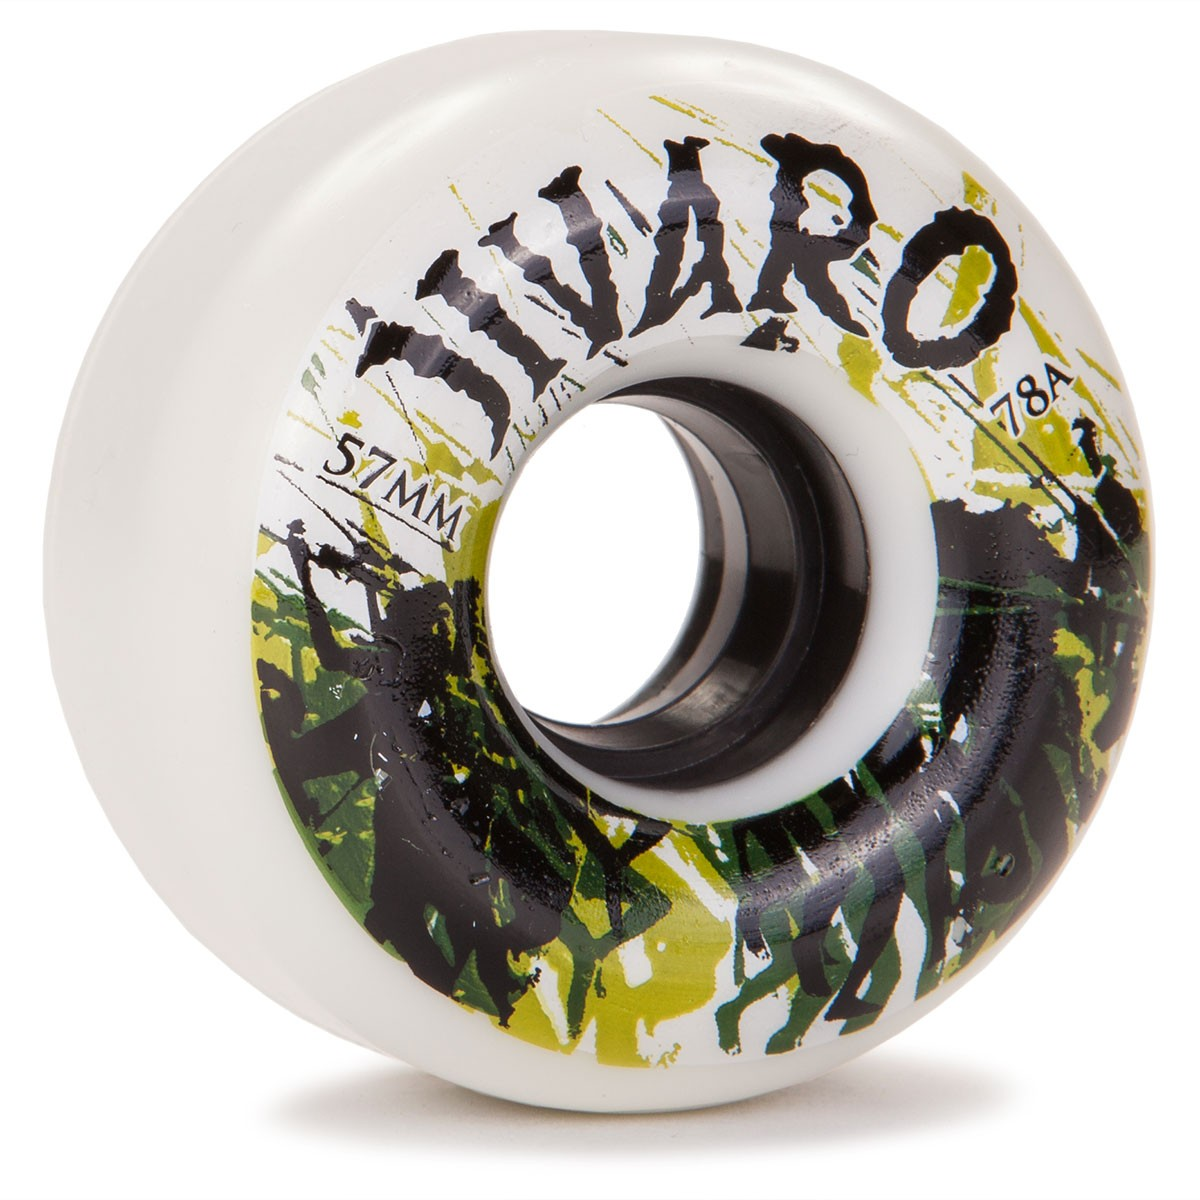 Jivaro El Dorado Skateboard Wheels 57mm 78a